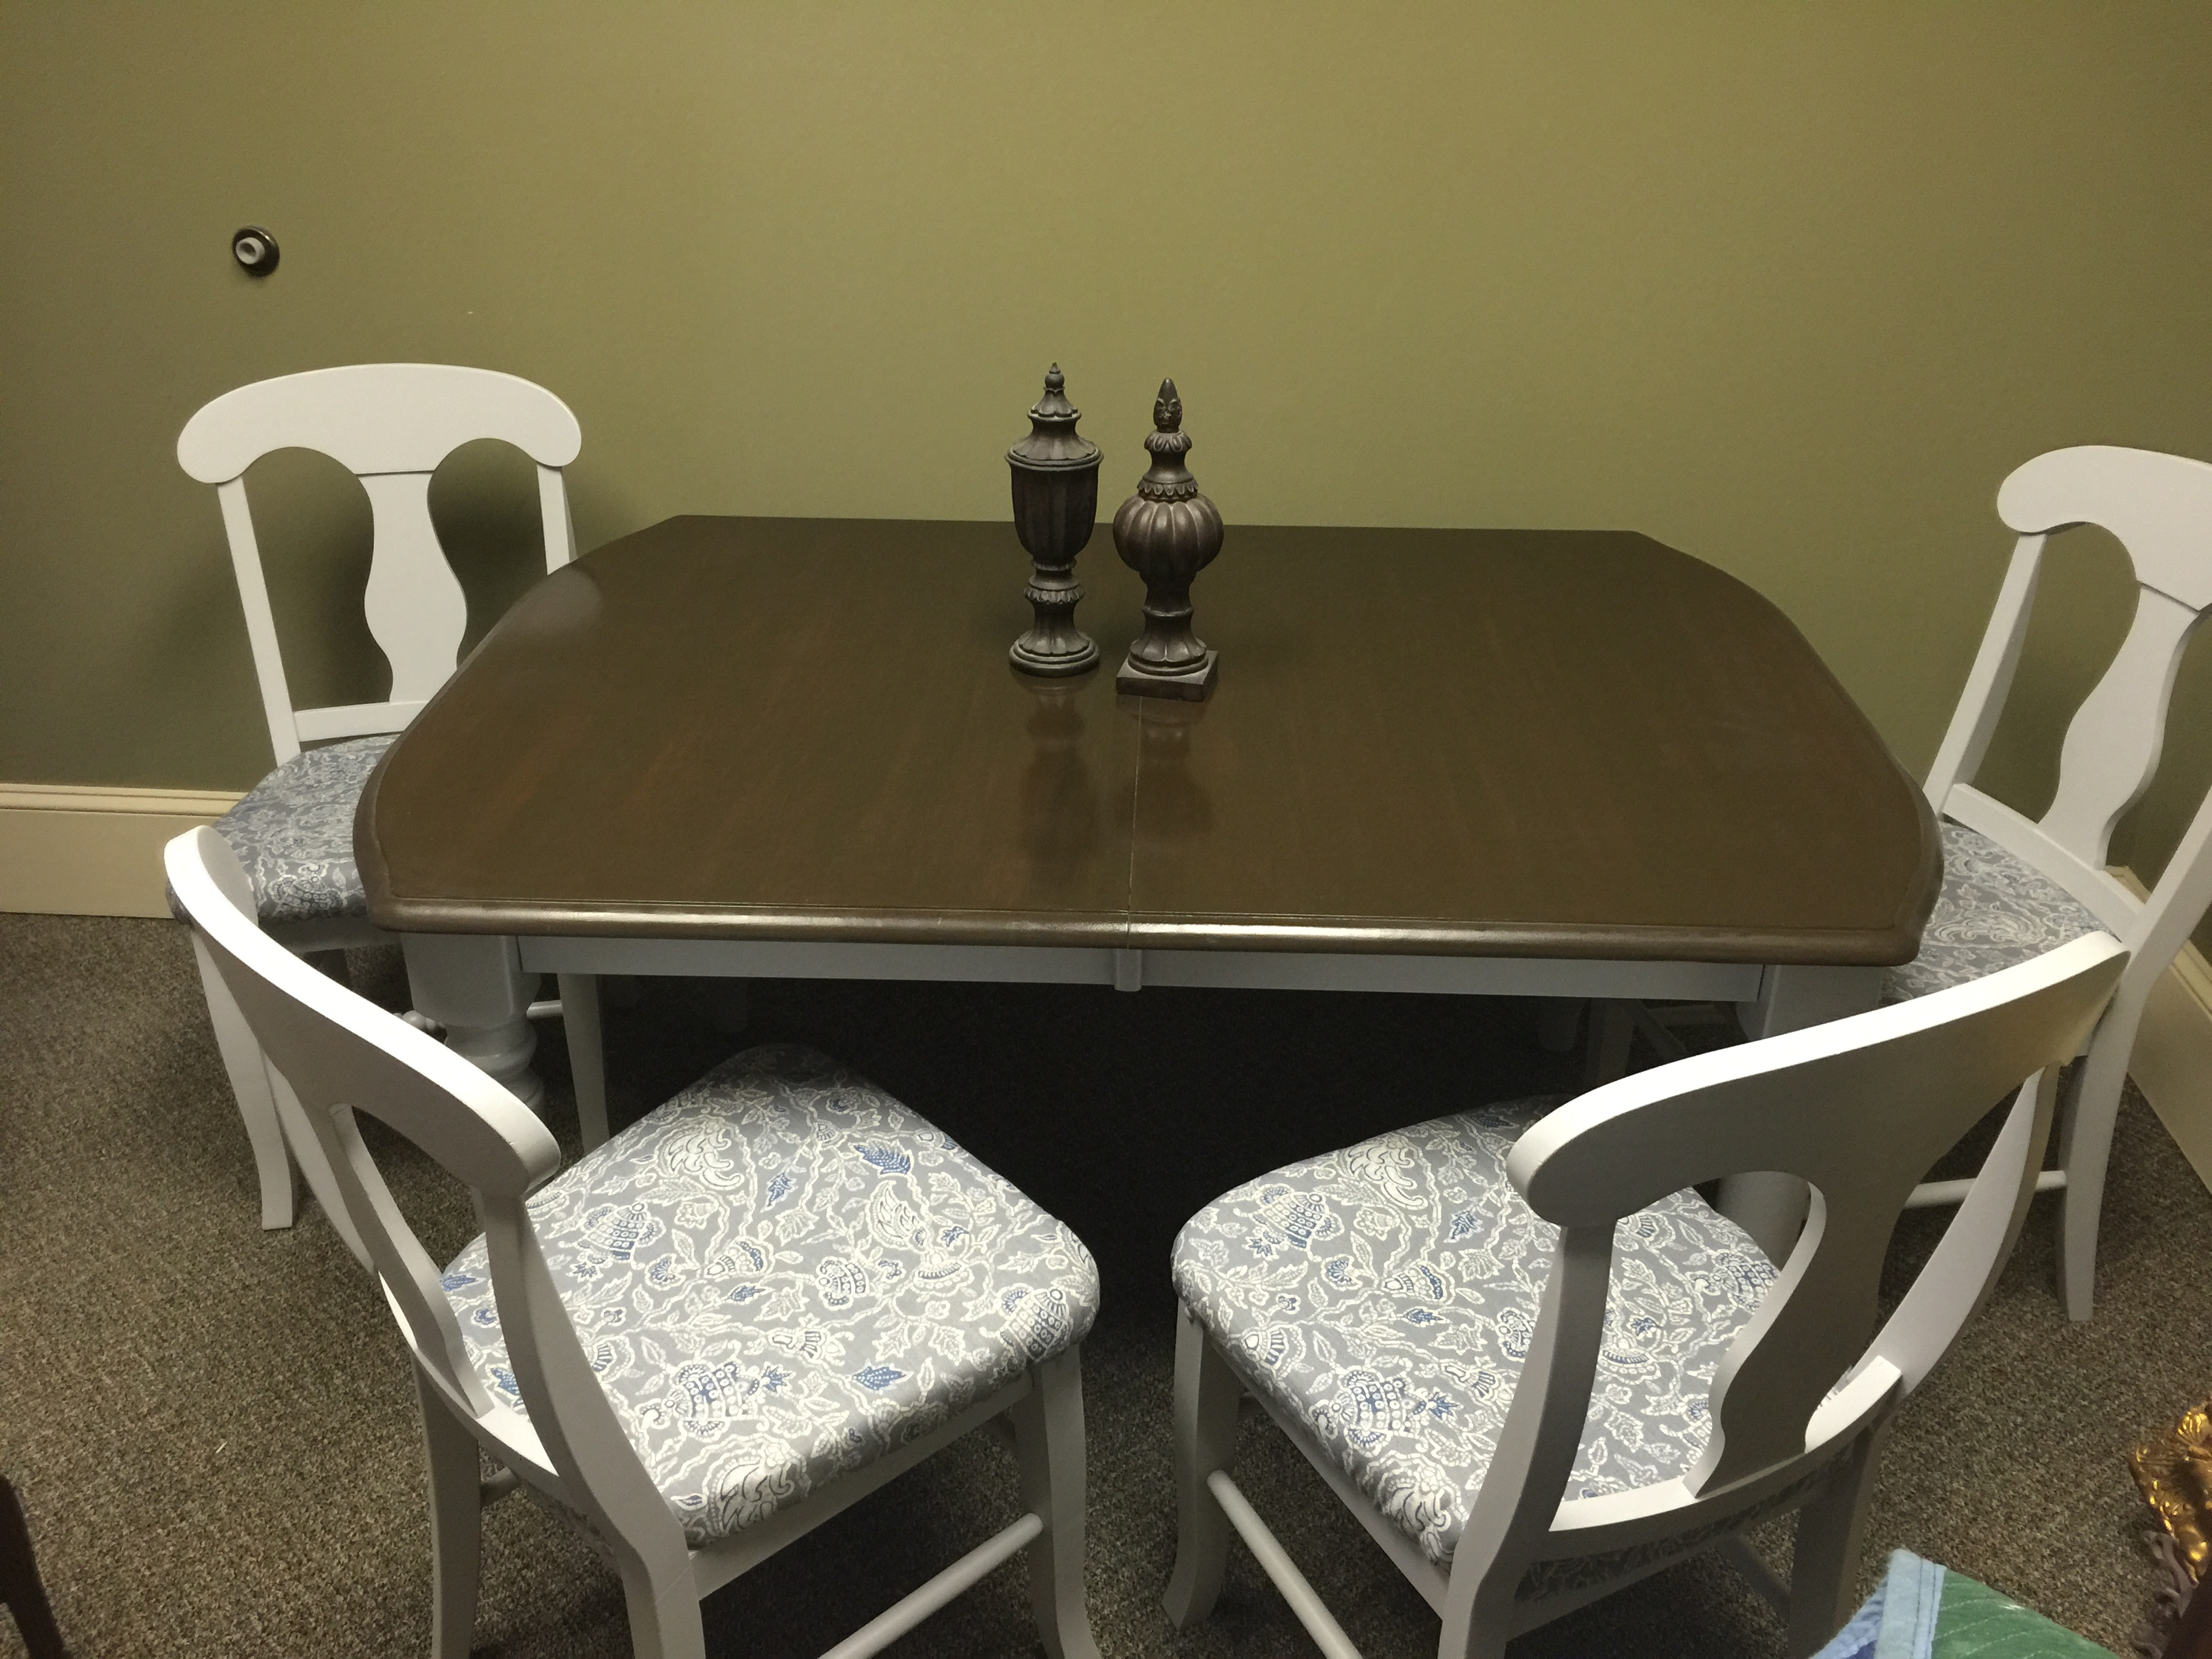 Rock Maple table with 4 chairs Fresh Vintage NC : IMG8480 from www.freshvintagenc.com size 3264 x 2448 jpeg 2049kB